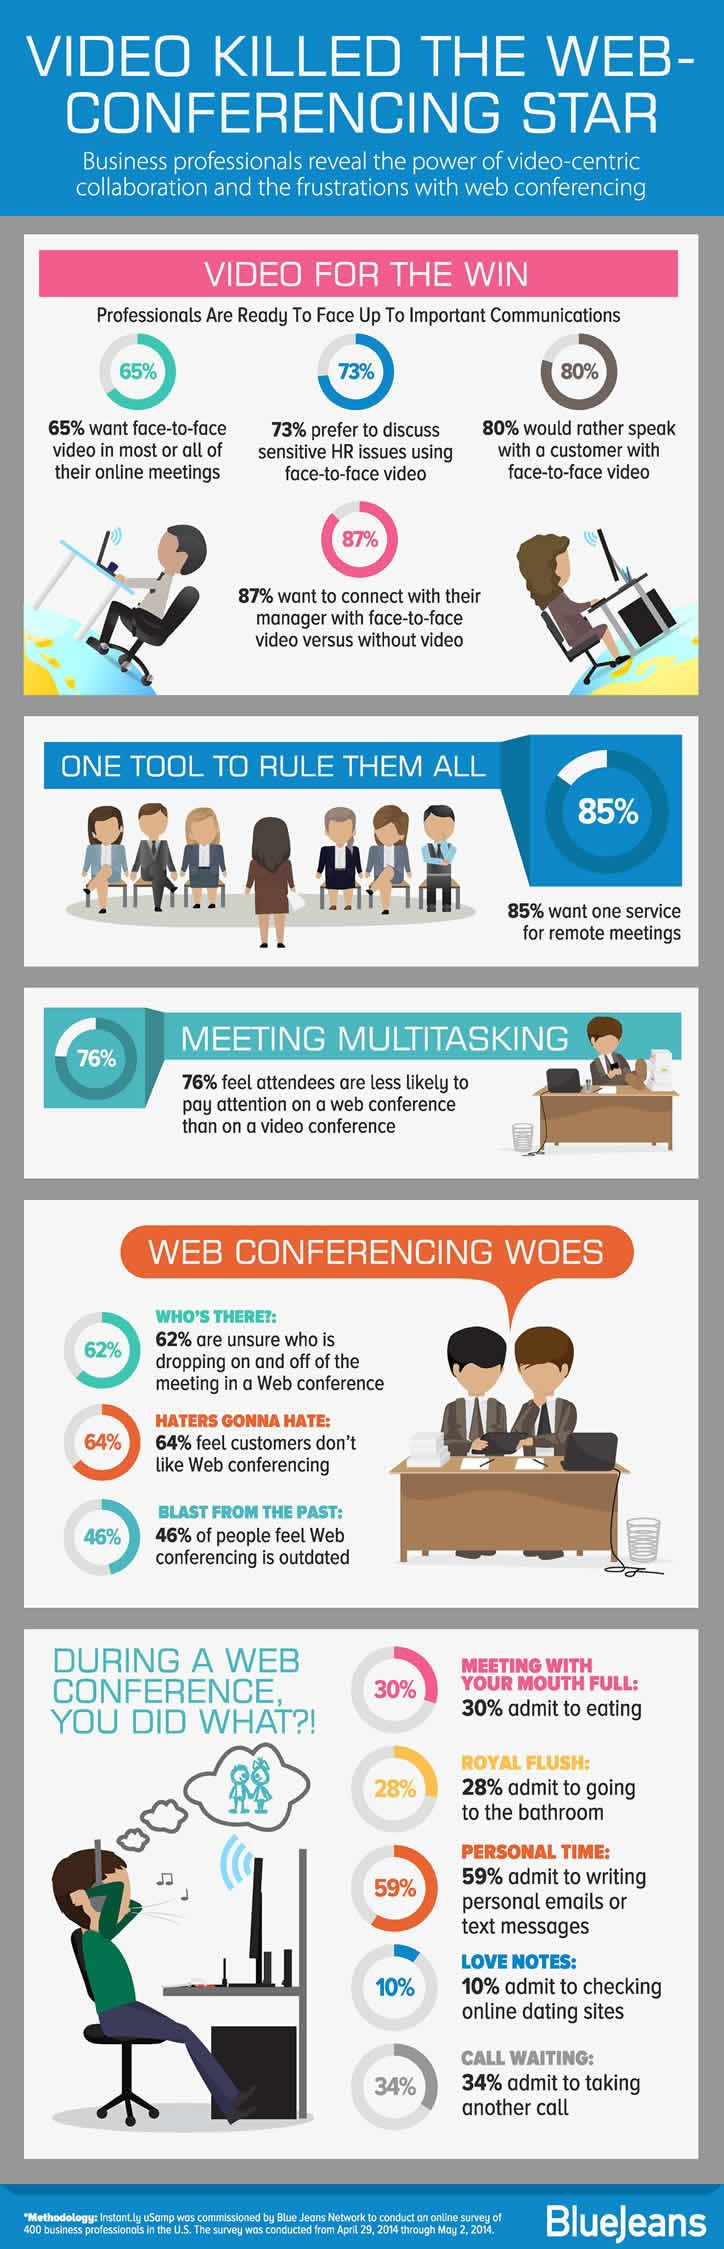 Video Conferencing for Marketing Professionals https://www.seeksolutions.com/seekcollab is just like BlueJeans, and we've made it super-user friendly for #Telemedicine and Coaches (with 20 years of virtual training teaching and systems dev). #bizdevlove ....Love these stats BJ found!